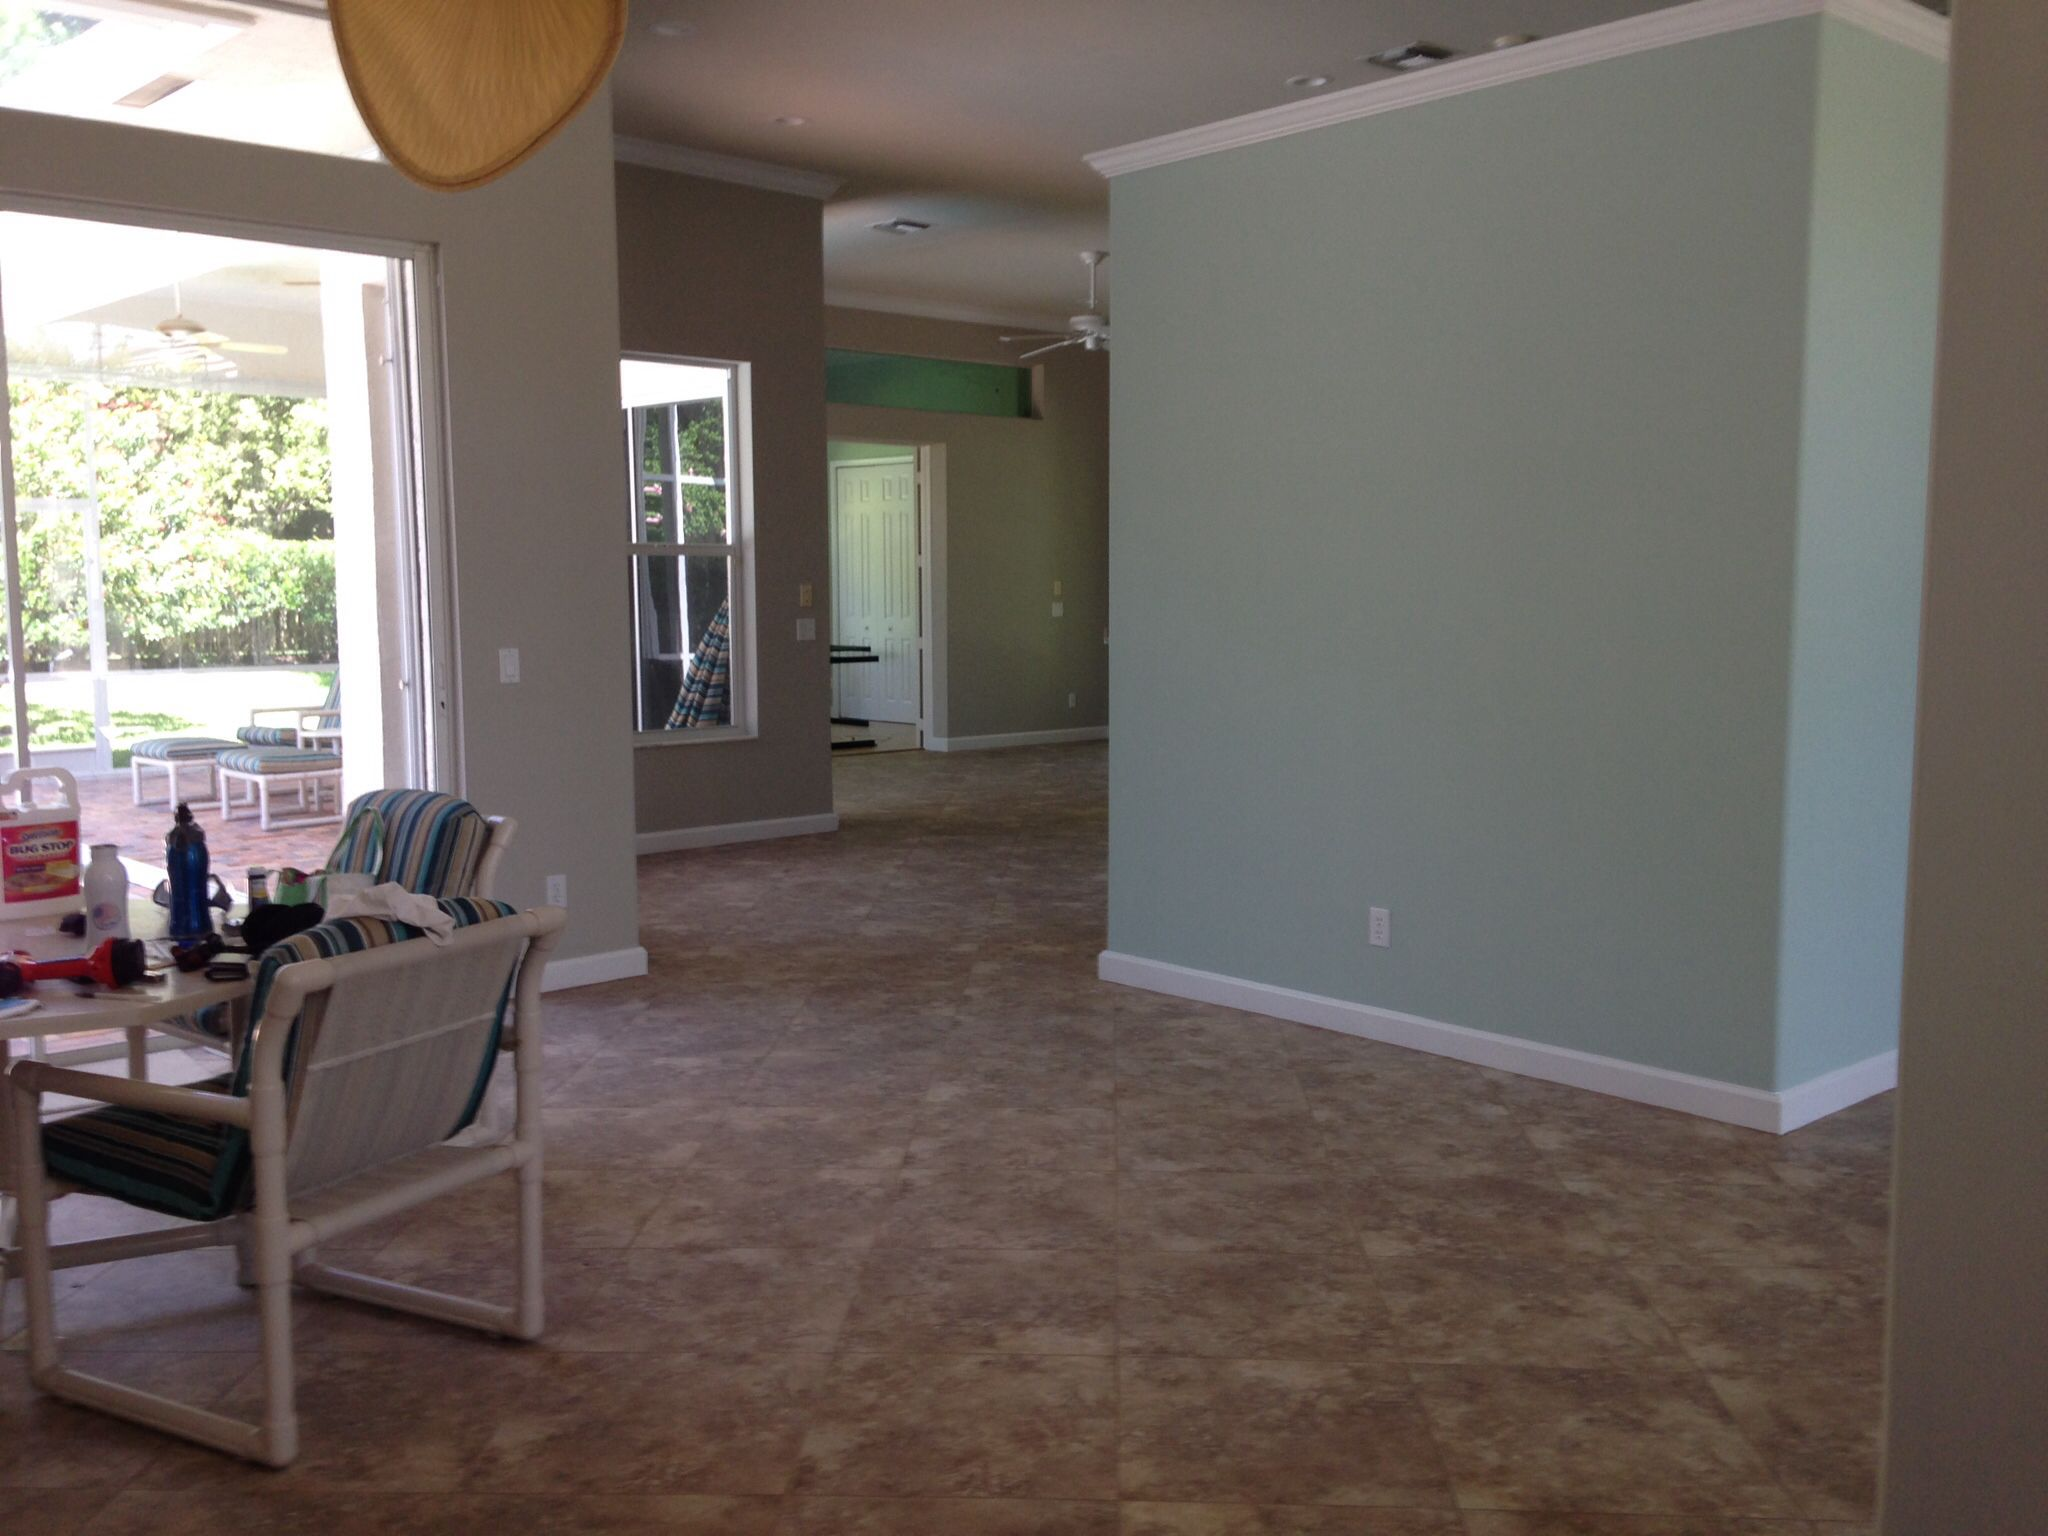 Benjamin moore revere pewter and palladian blue walls - Benjamin moore palladian blue living room ...